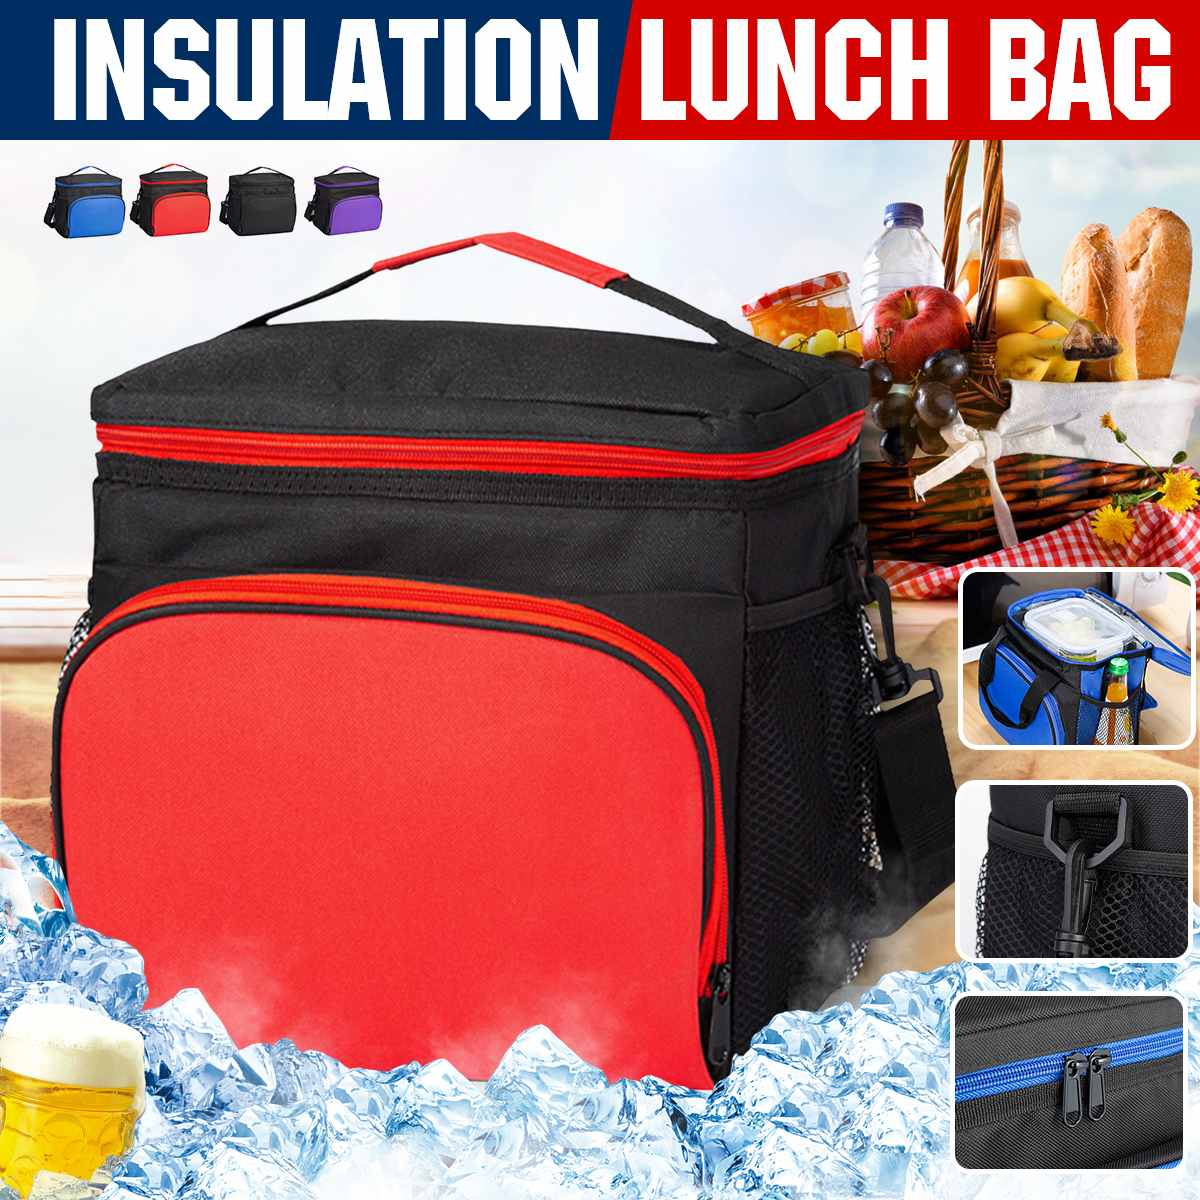 Insulated Lunch Bag Cold Storage Bags